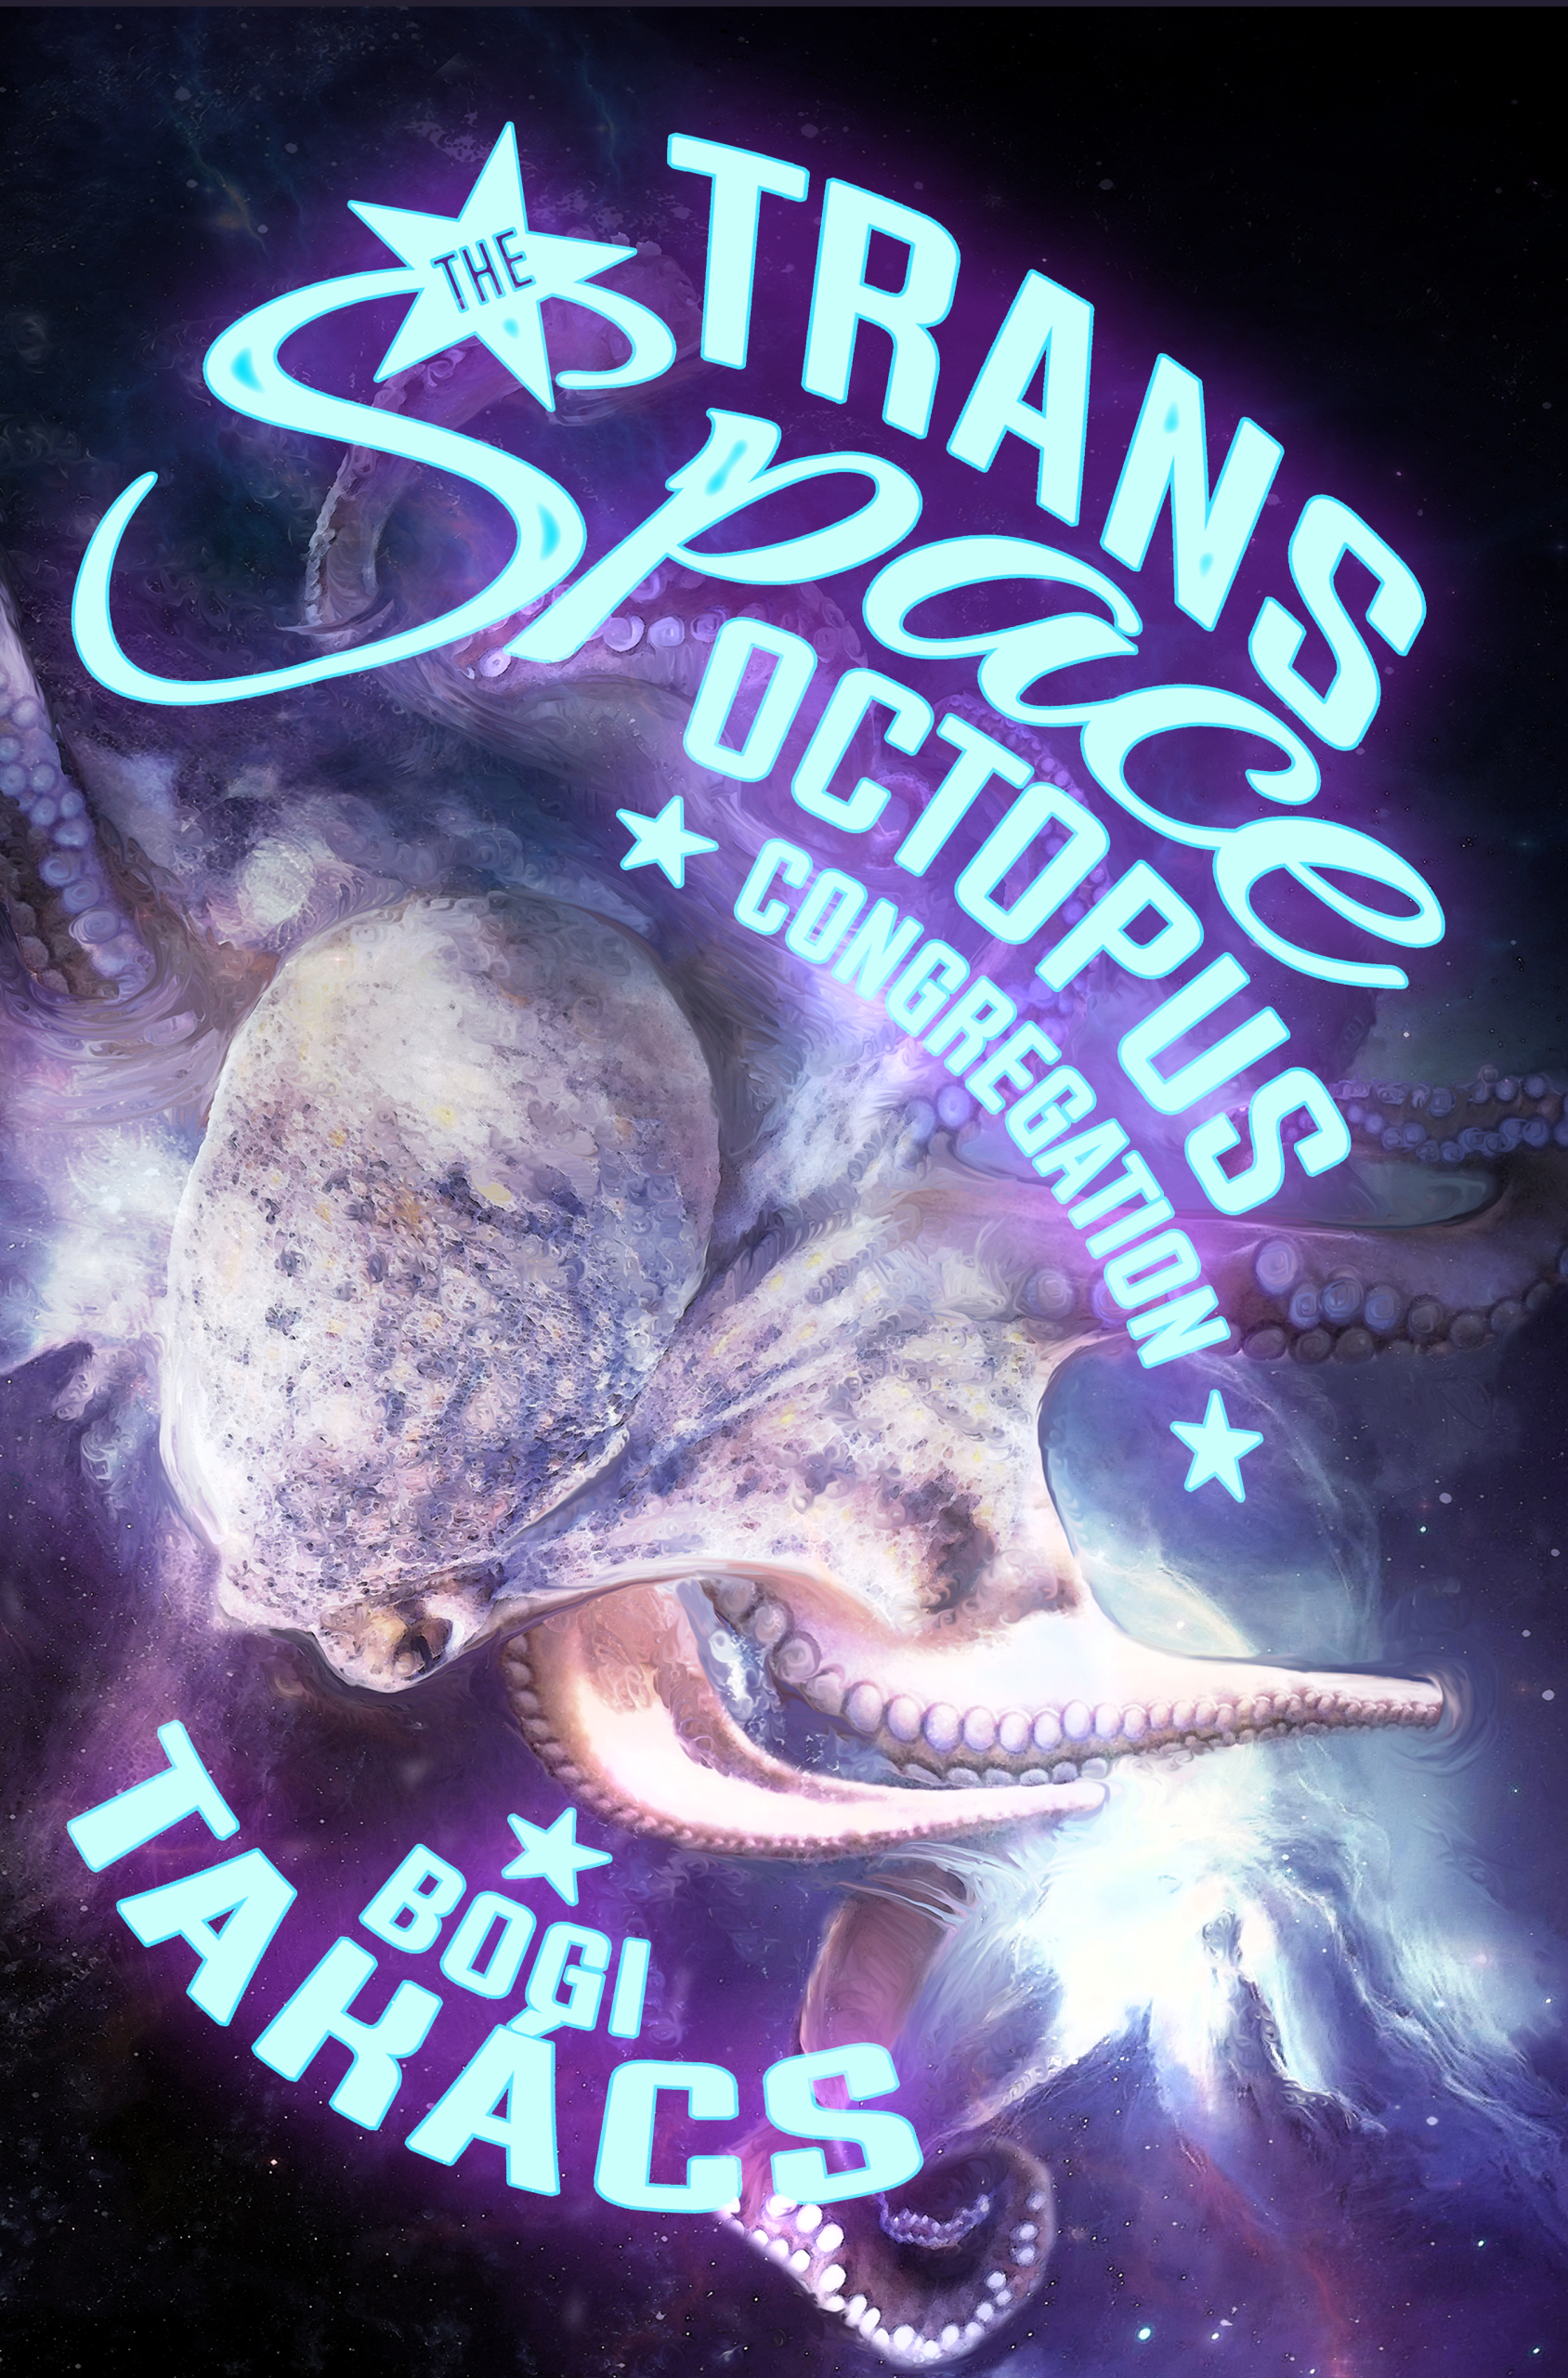 The cover of The Trans Space Octopus Congregation, with an octopus on top of a space-y background and a glowing pastel blue font with a few stars as embellishment.